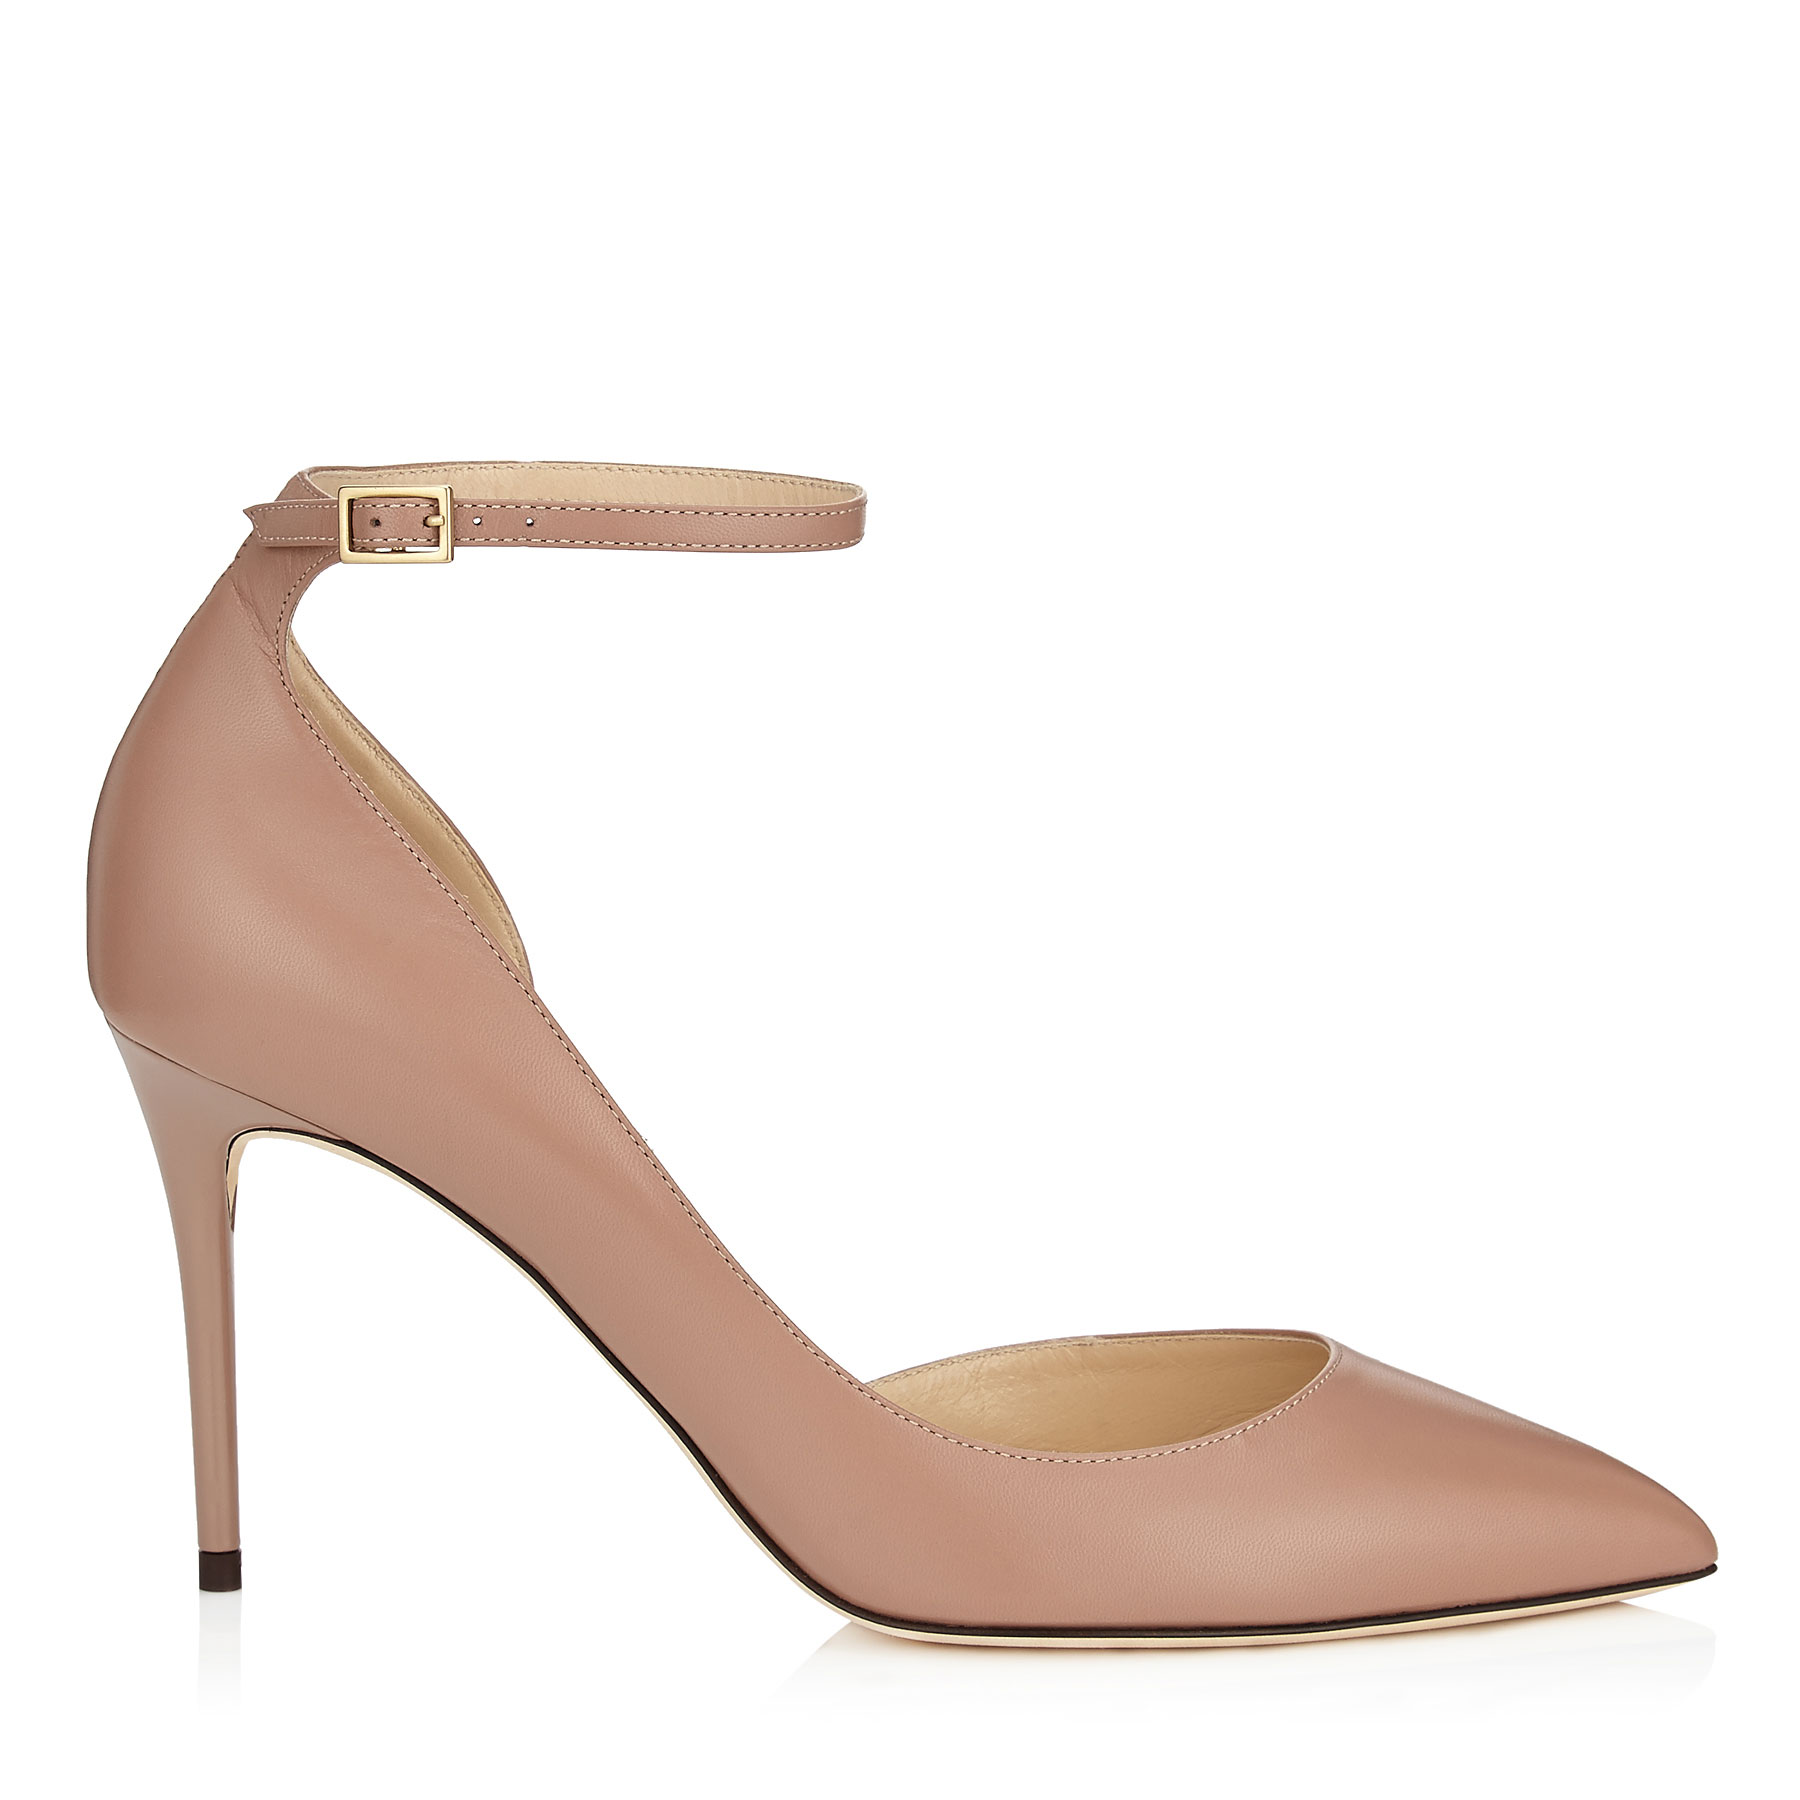 LUCY 85 Ballet Pink Kid Leather Pointy Toe Pumps by Jimmy Choo